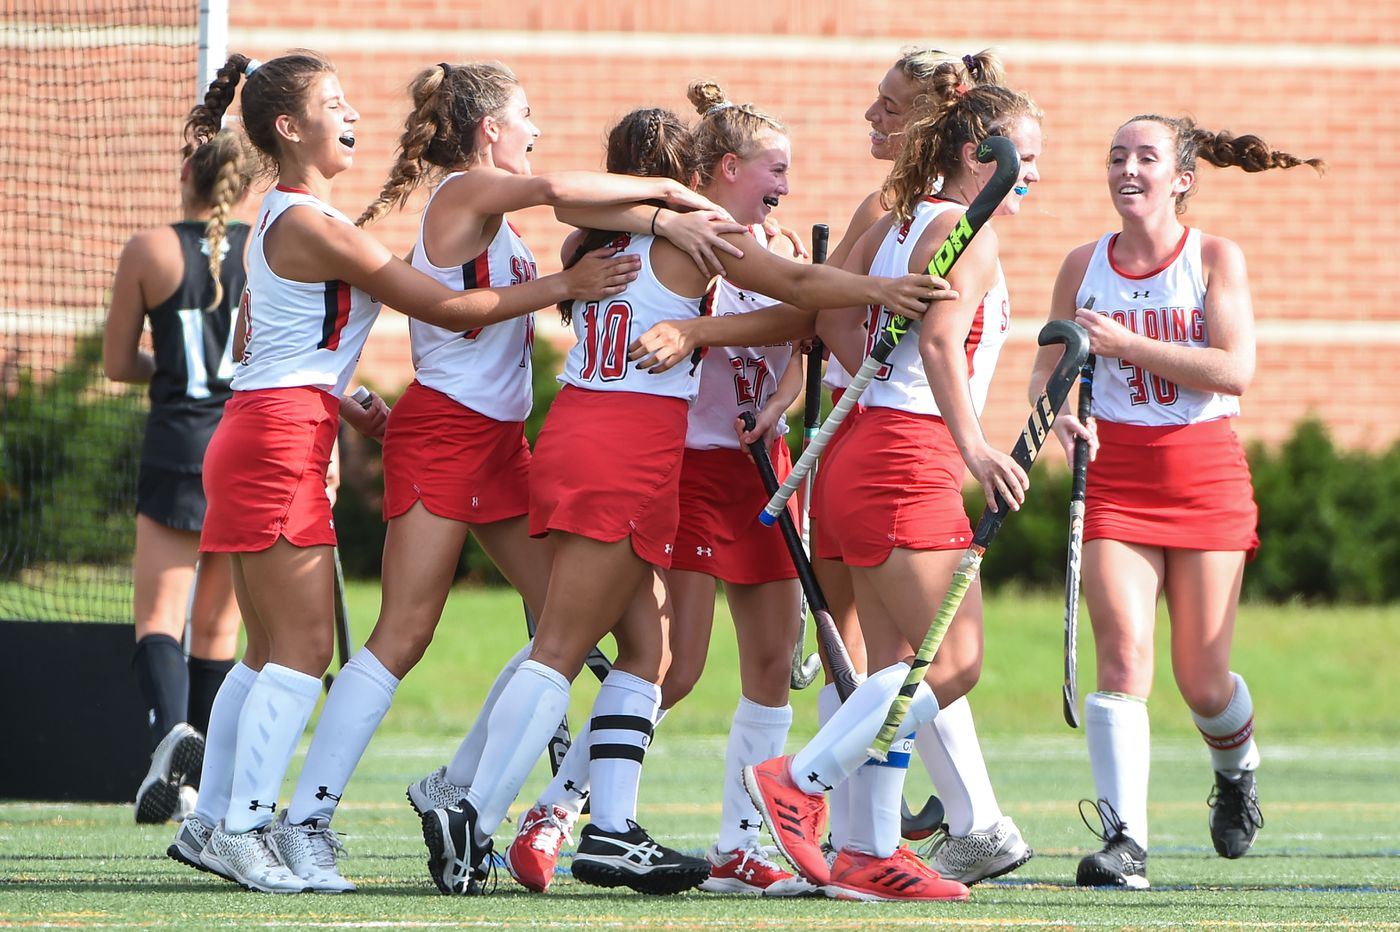 Spalding celebrates a goal in the second period.  Archbishop Spalding will host field hockey at Arundel High School on Thursday, September 10, beating them 5-1 in regular time.  09.09.21